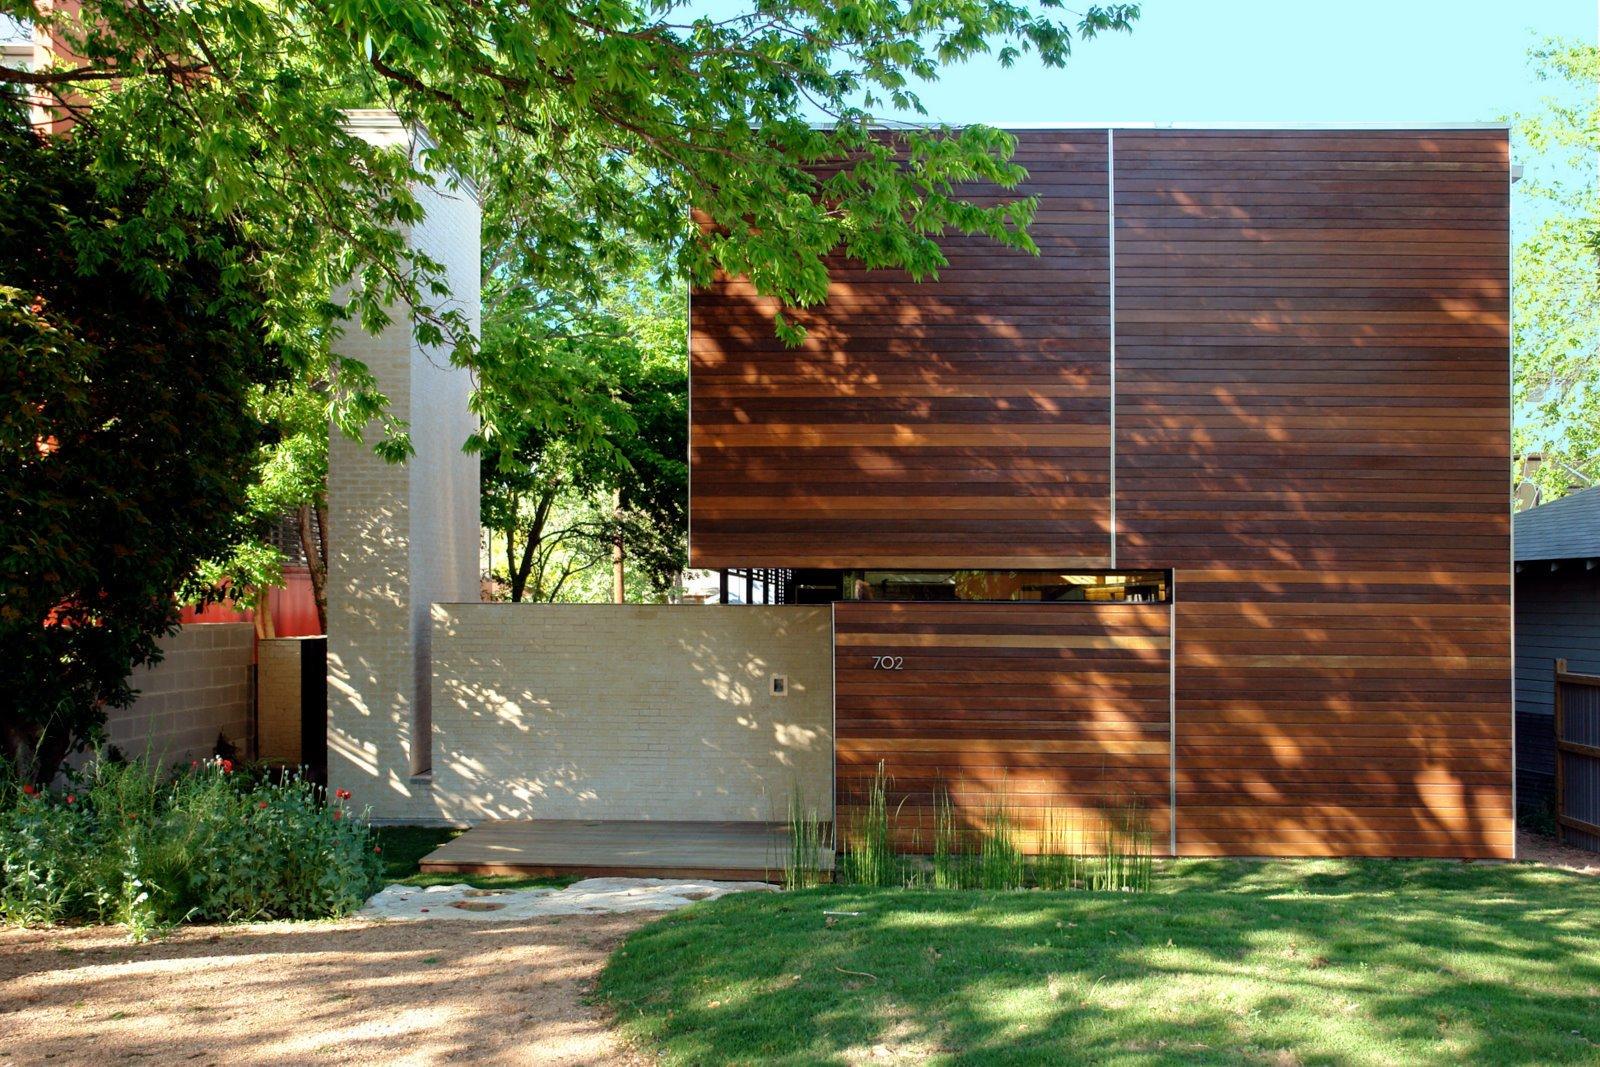 Homeowners Alex Wolfe and Jamie Thorvilson recently moved into the Wolfe Den, which sits on a quiet residential block in Austin. The facade, clad in massarunduba hardwood sourced from a managed forest supplier, strikes a sharp modern chord but still echoes the painted wood siding on many of the neighboring homes.  Reasons to Love Austin, Texas by Erika Heet from Unique Houses in Austin, Texas